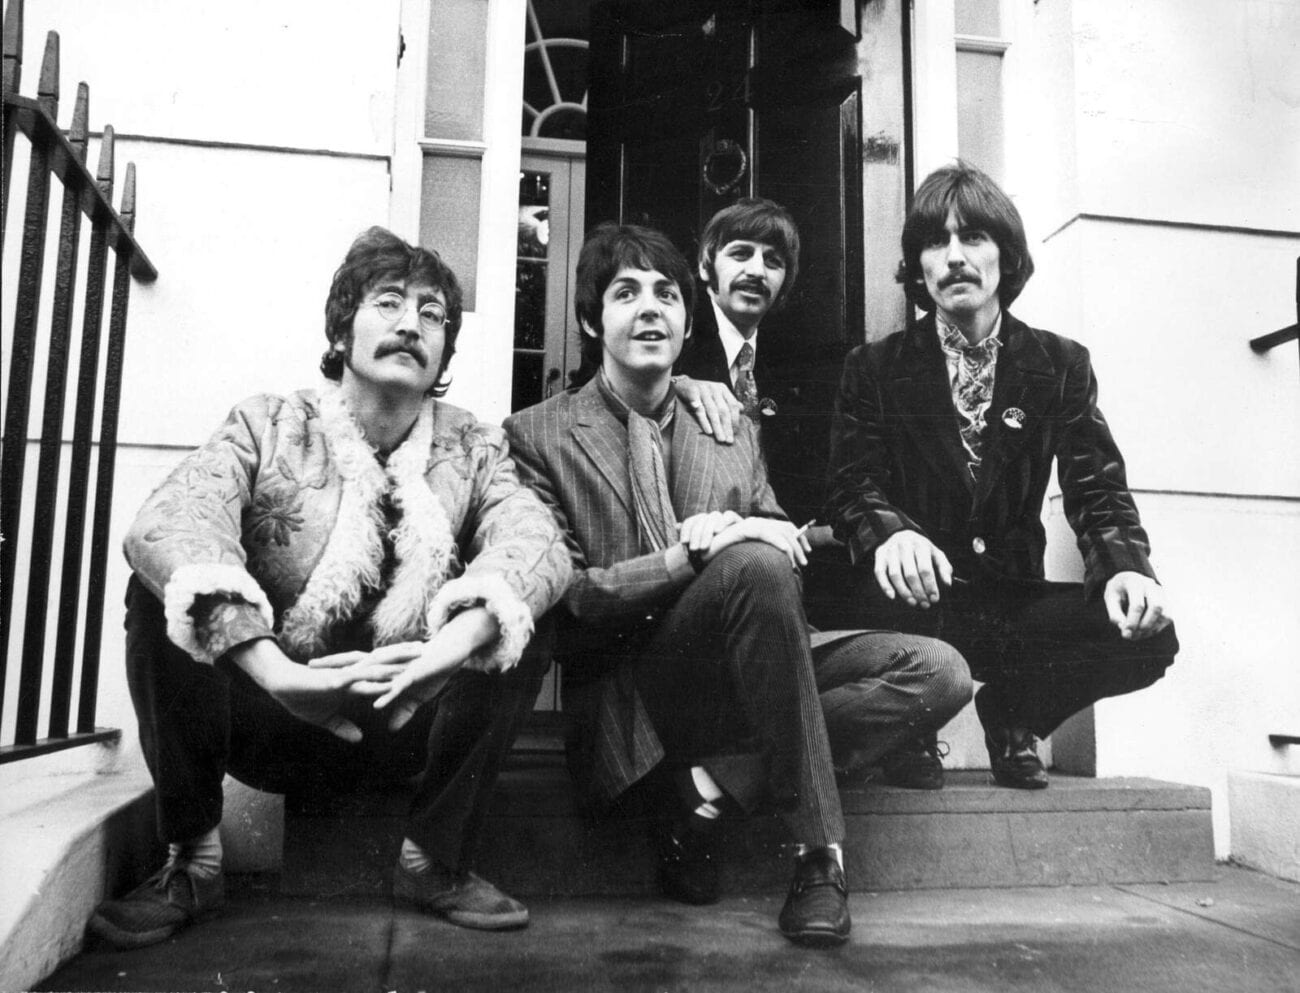 """Ready to """"Get Back"""" to where you once belong? Peter Jackson dropped big news about his new documentary about The Beatles. Dive into the deets here."""